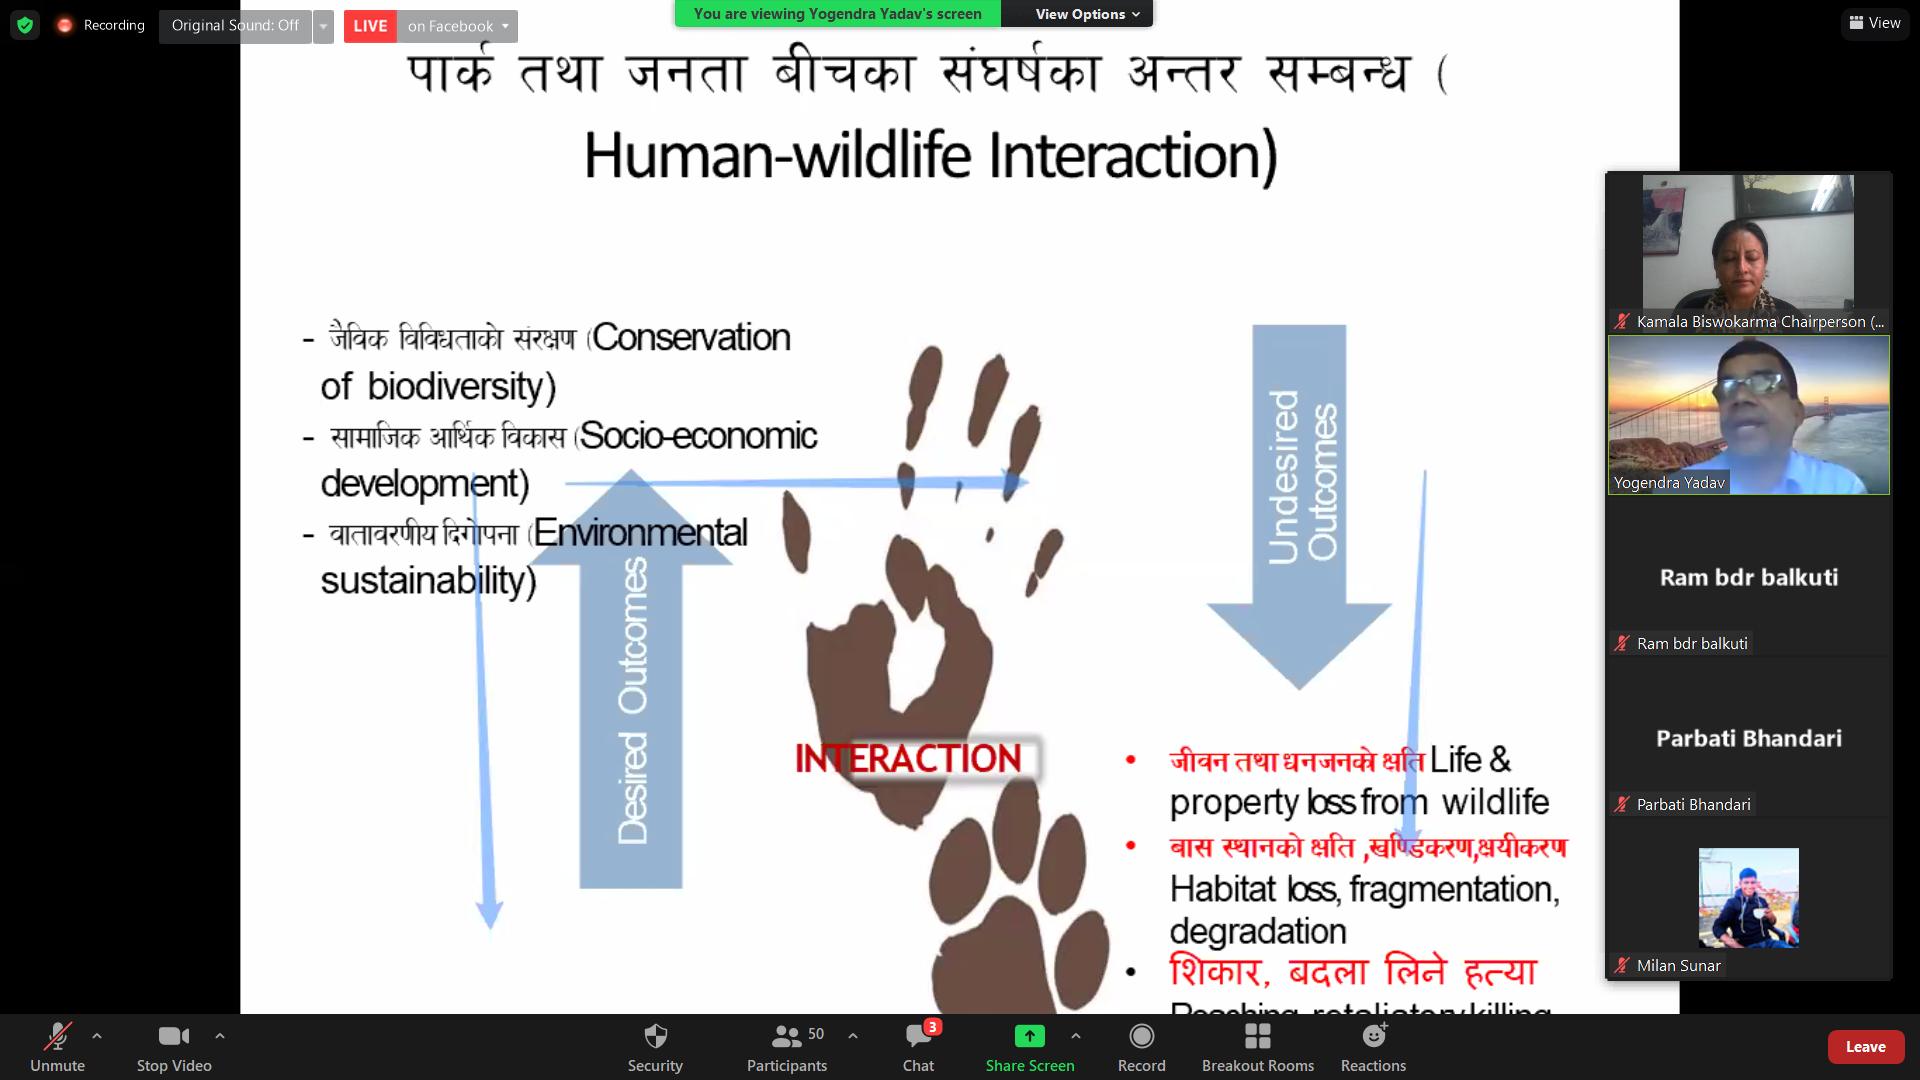 The highest risk areas for parks and conservation areas are Chitwan National Park and the Chepangs in the intermediate zone